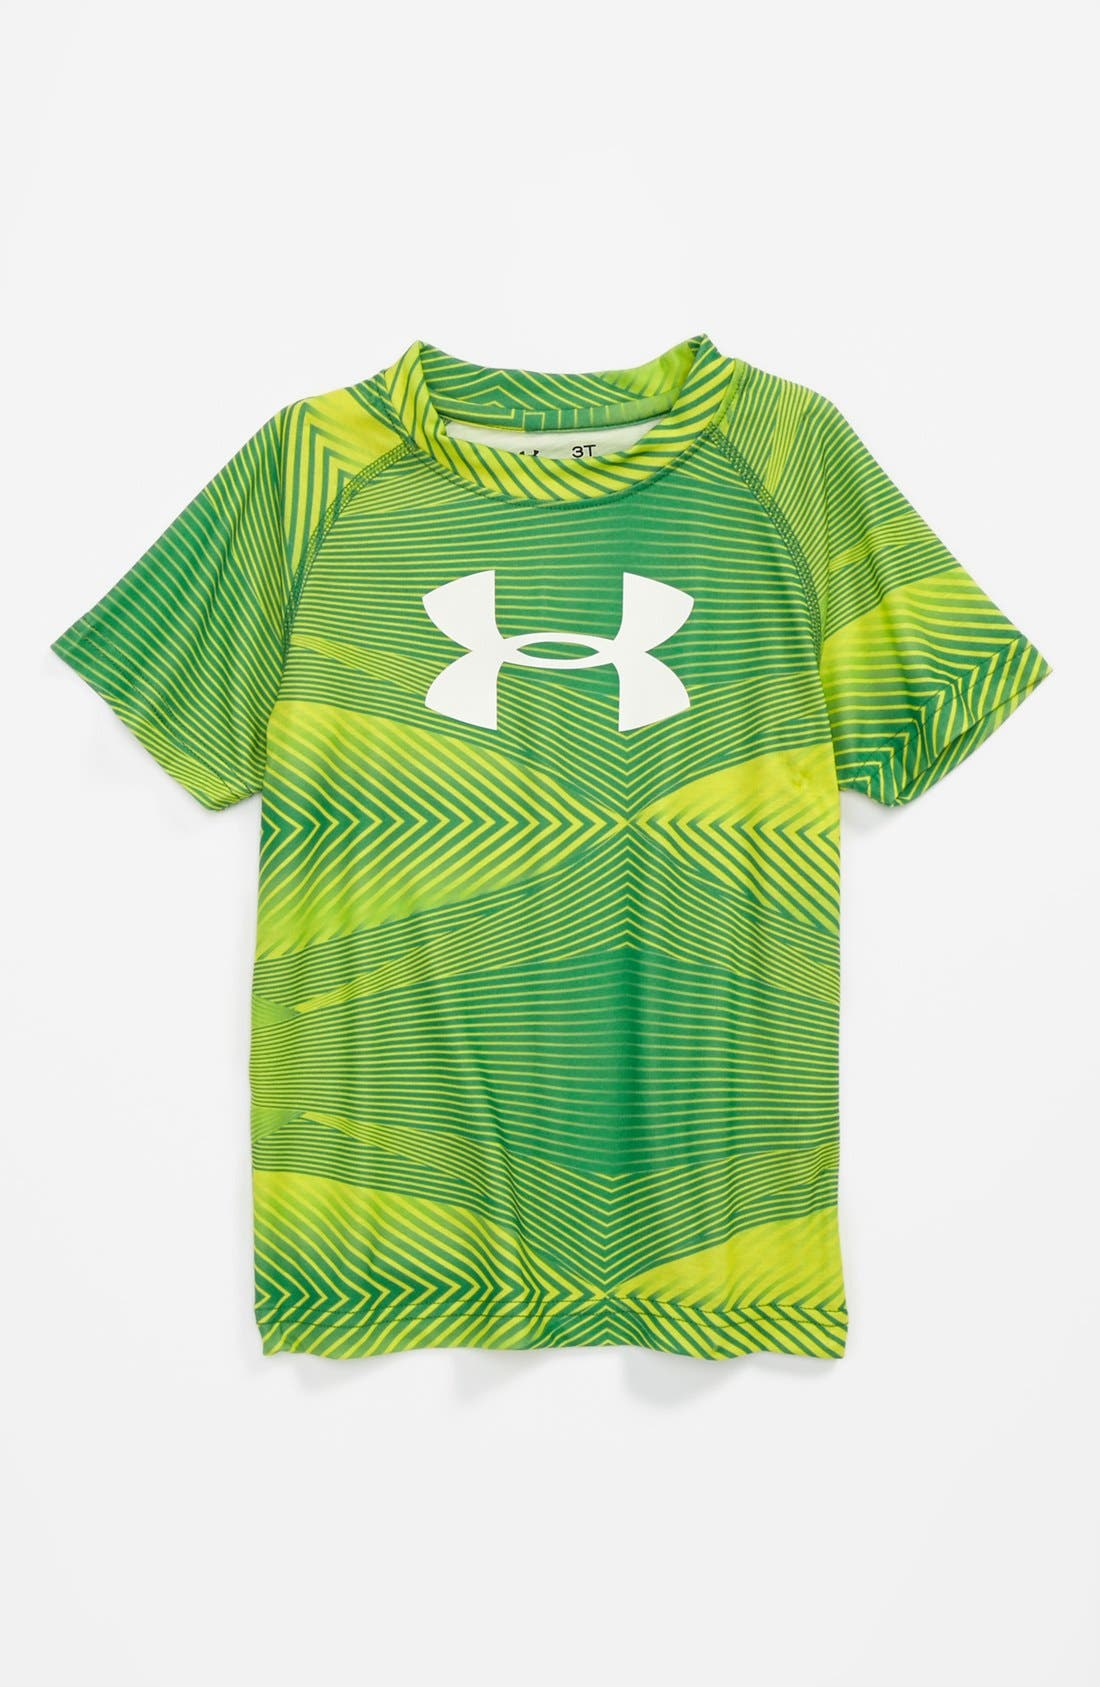 Alternate Image 1 Selected - Under Armour Ultralight HeatGear® Tee (Toddler Boys)